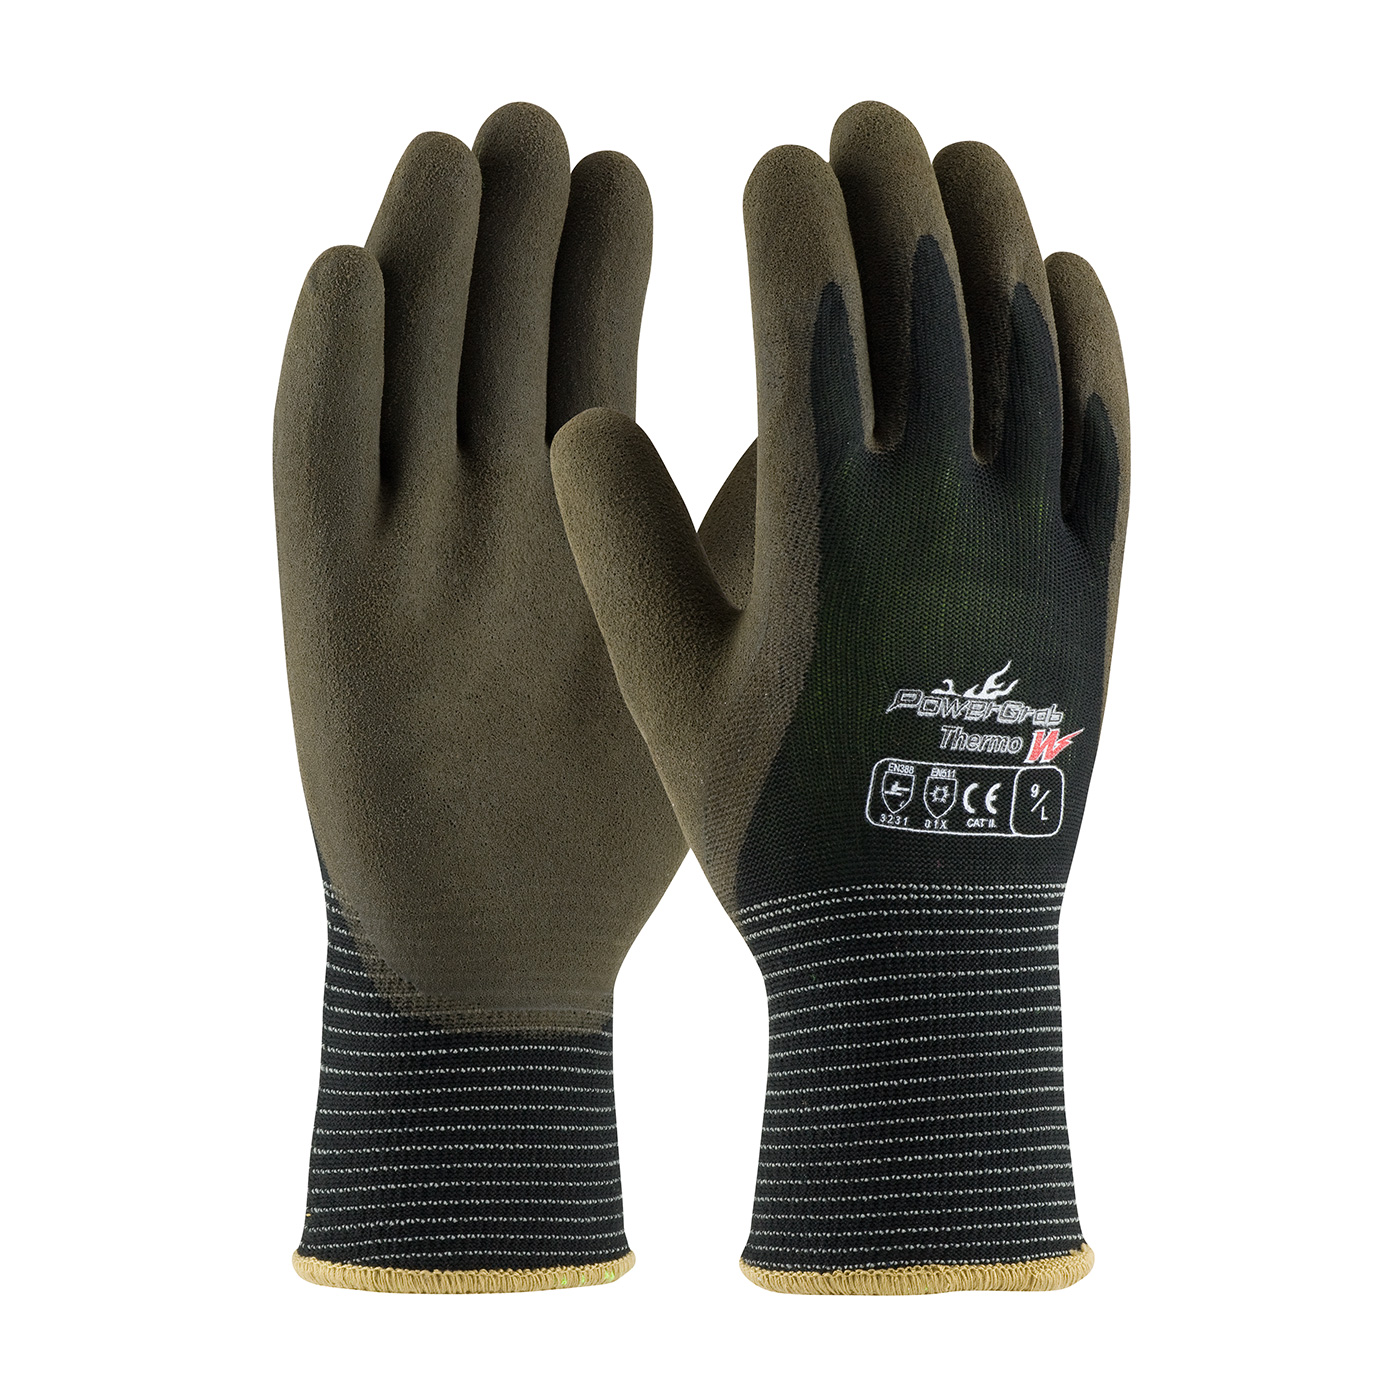 PIP 41-1430/XL PowerGrab Thermo W Seamless Knit Polyester Glove with Acrylic Liner and Latex MicroFinish Grip on Palm & Fingers - X-Large PID-41 1430 XL